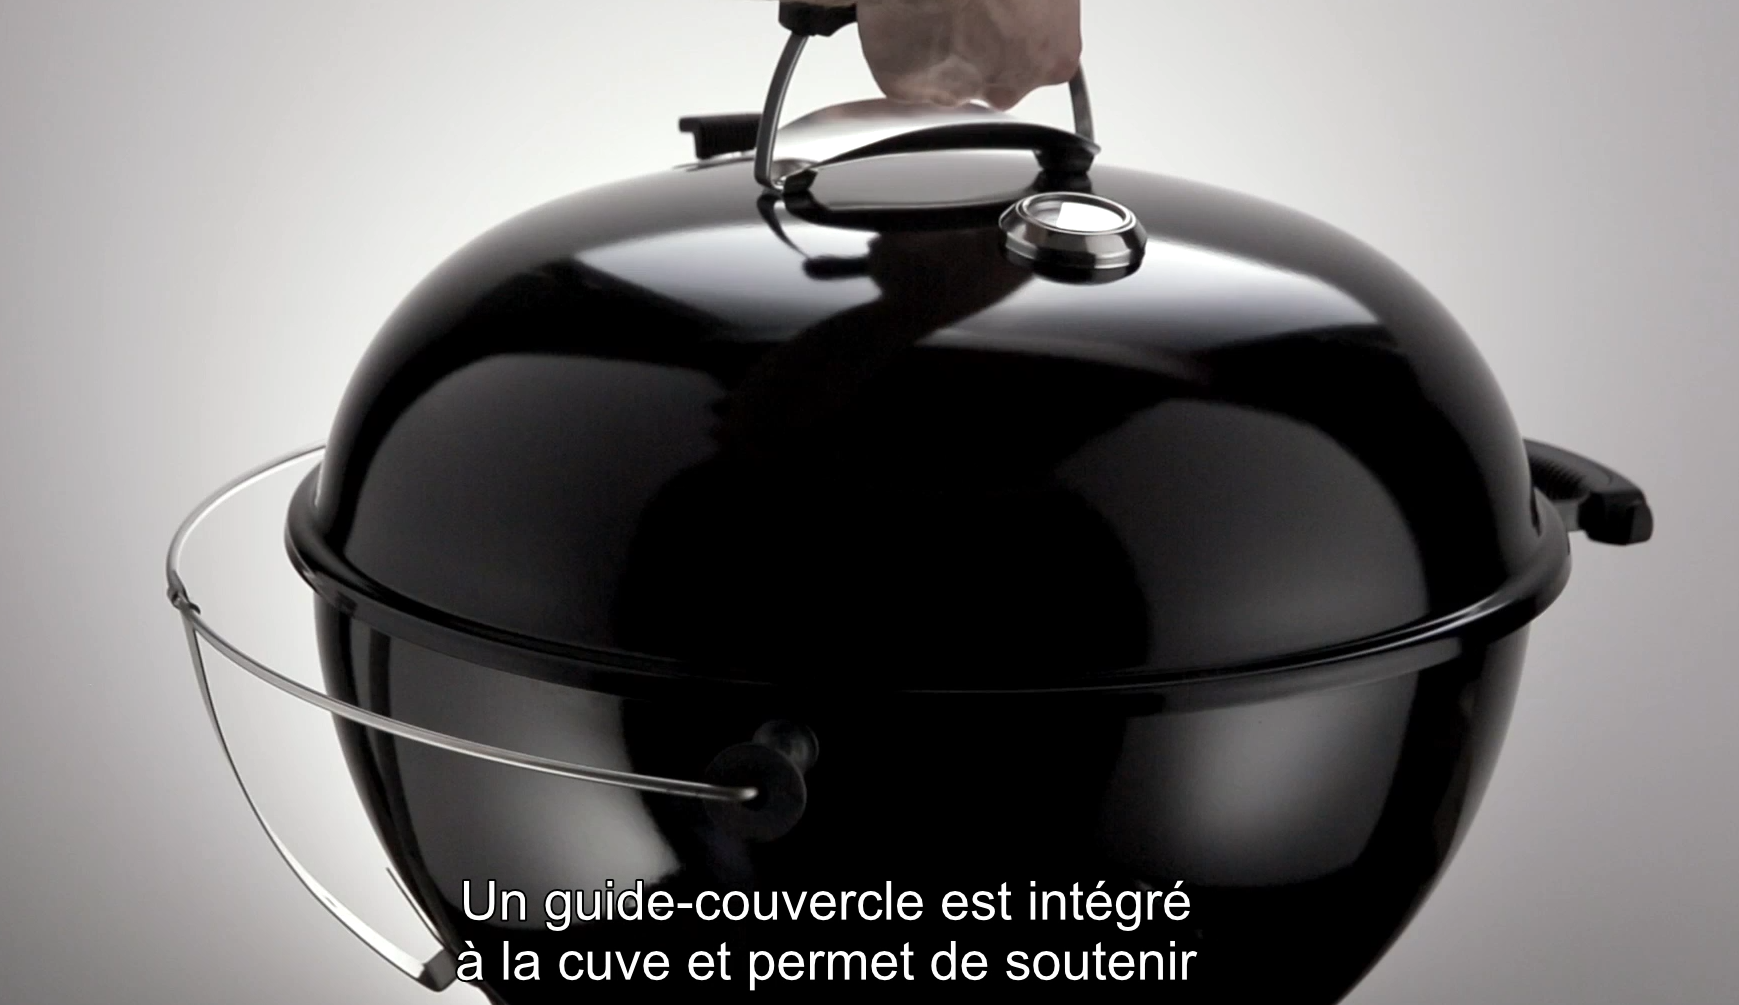 Video subtitling for barbeque giant, Weber